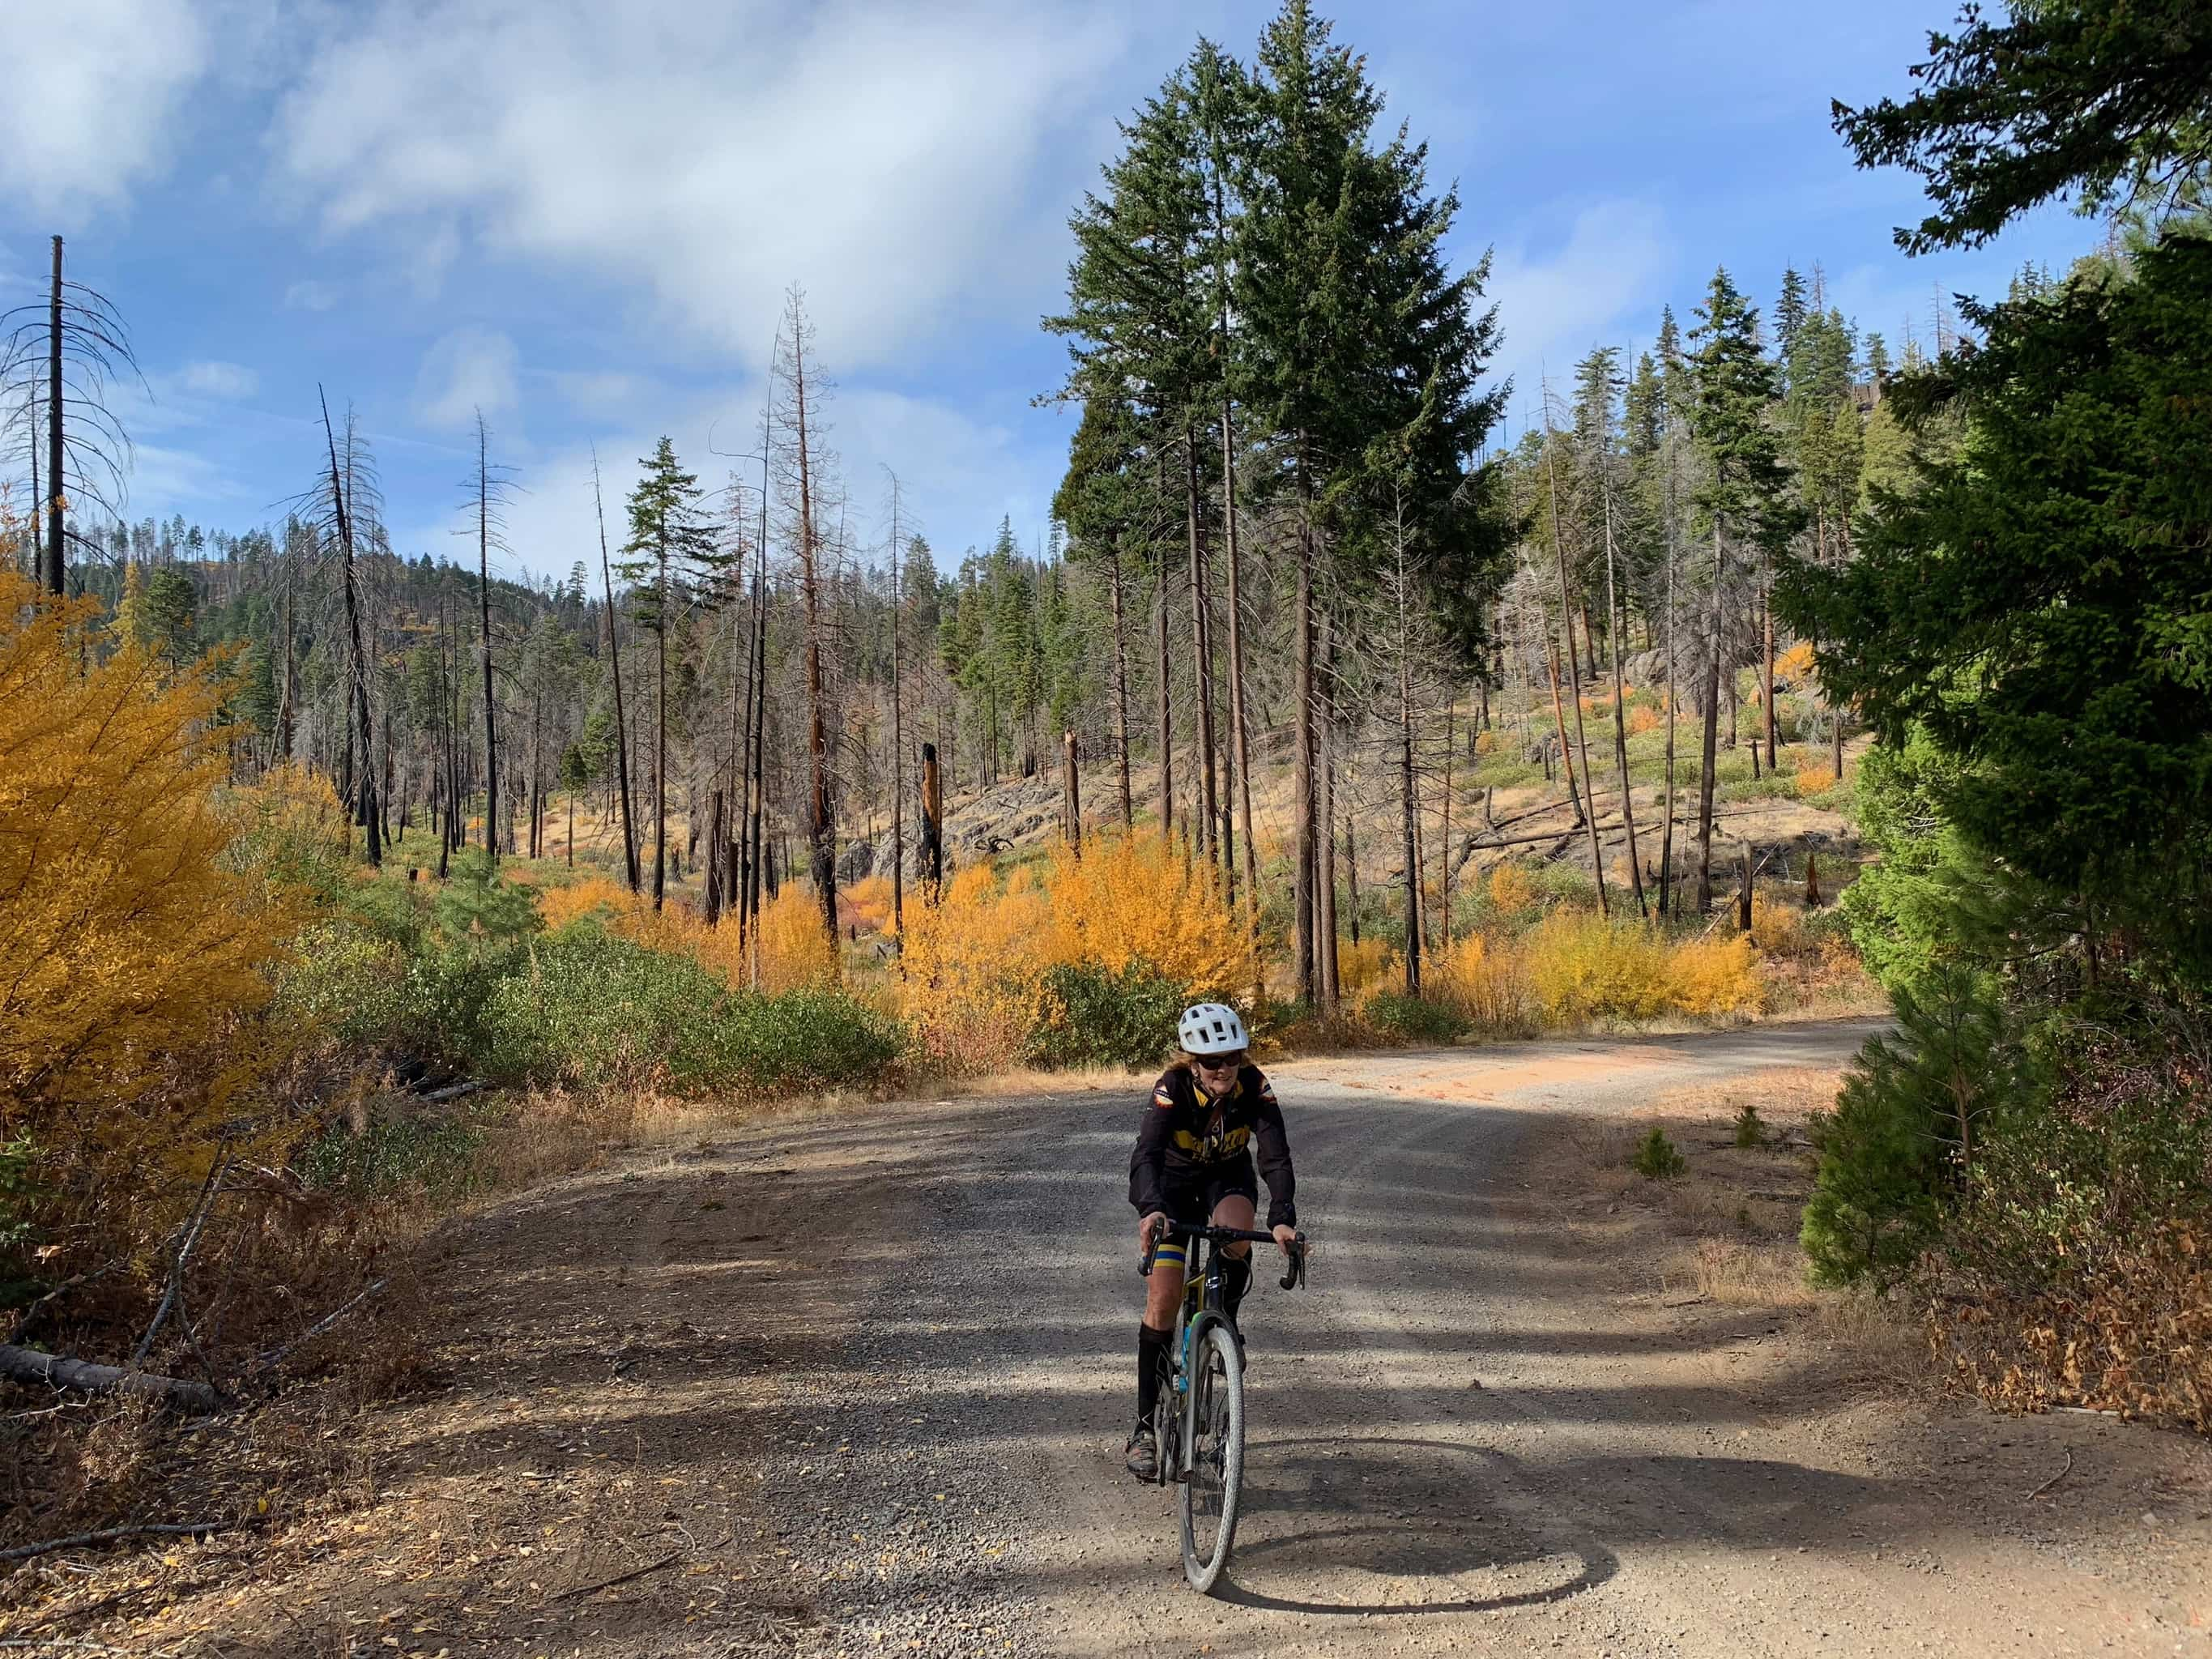 Gravel bike rider on gravel road making sweeping uphill turn with trees changing color in background.